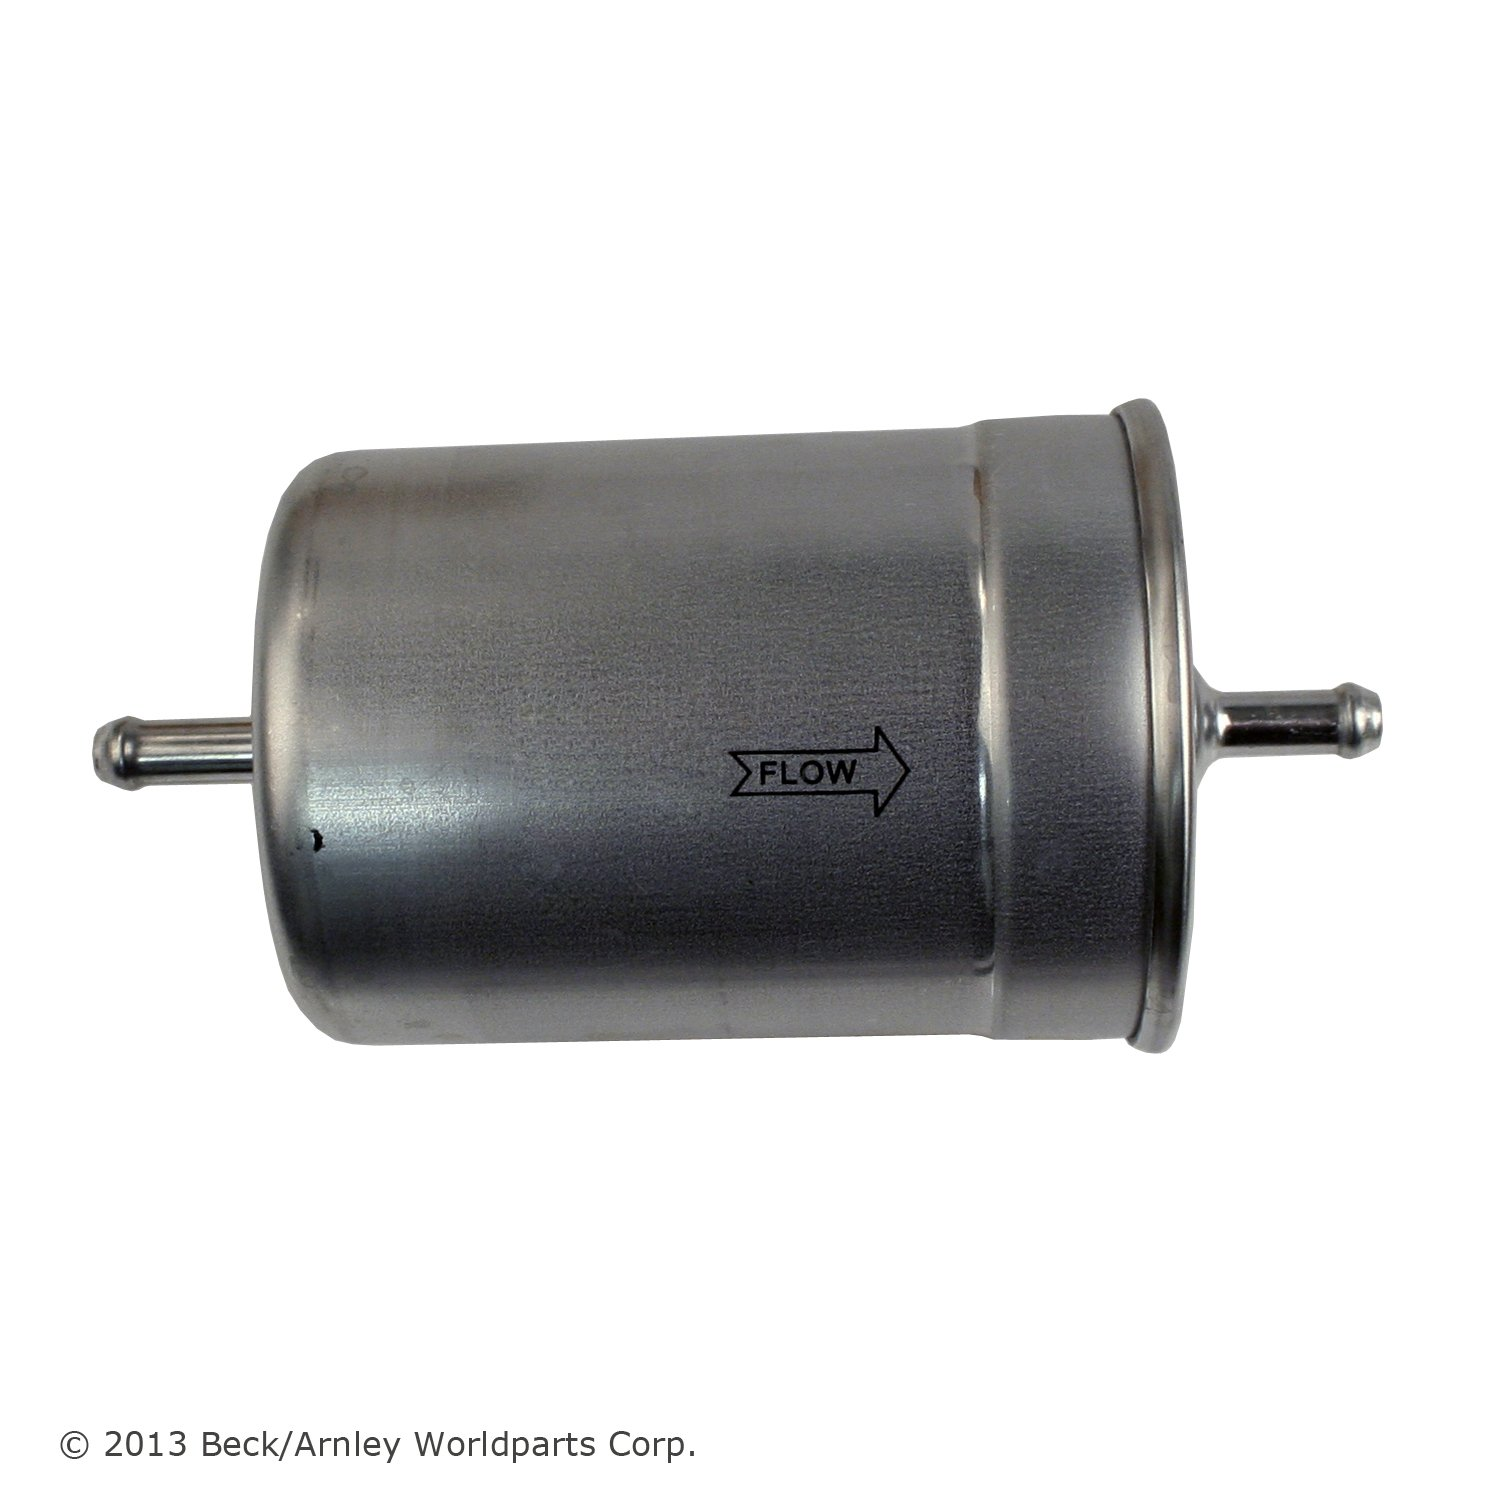 1999 Mercedes Benz C230 Fuel Filter Slk230 Ba 043 0805